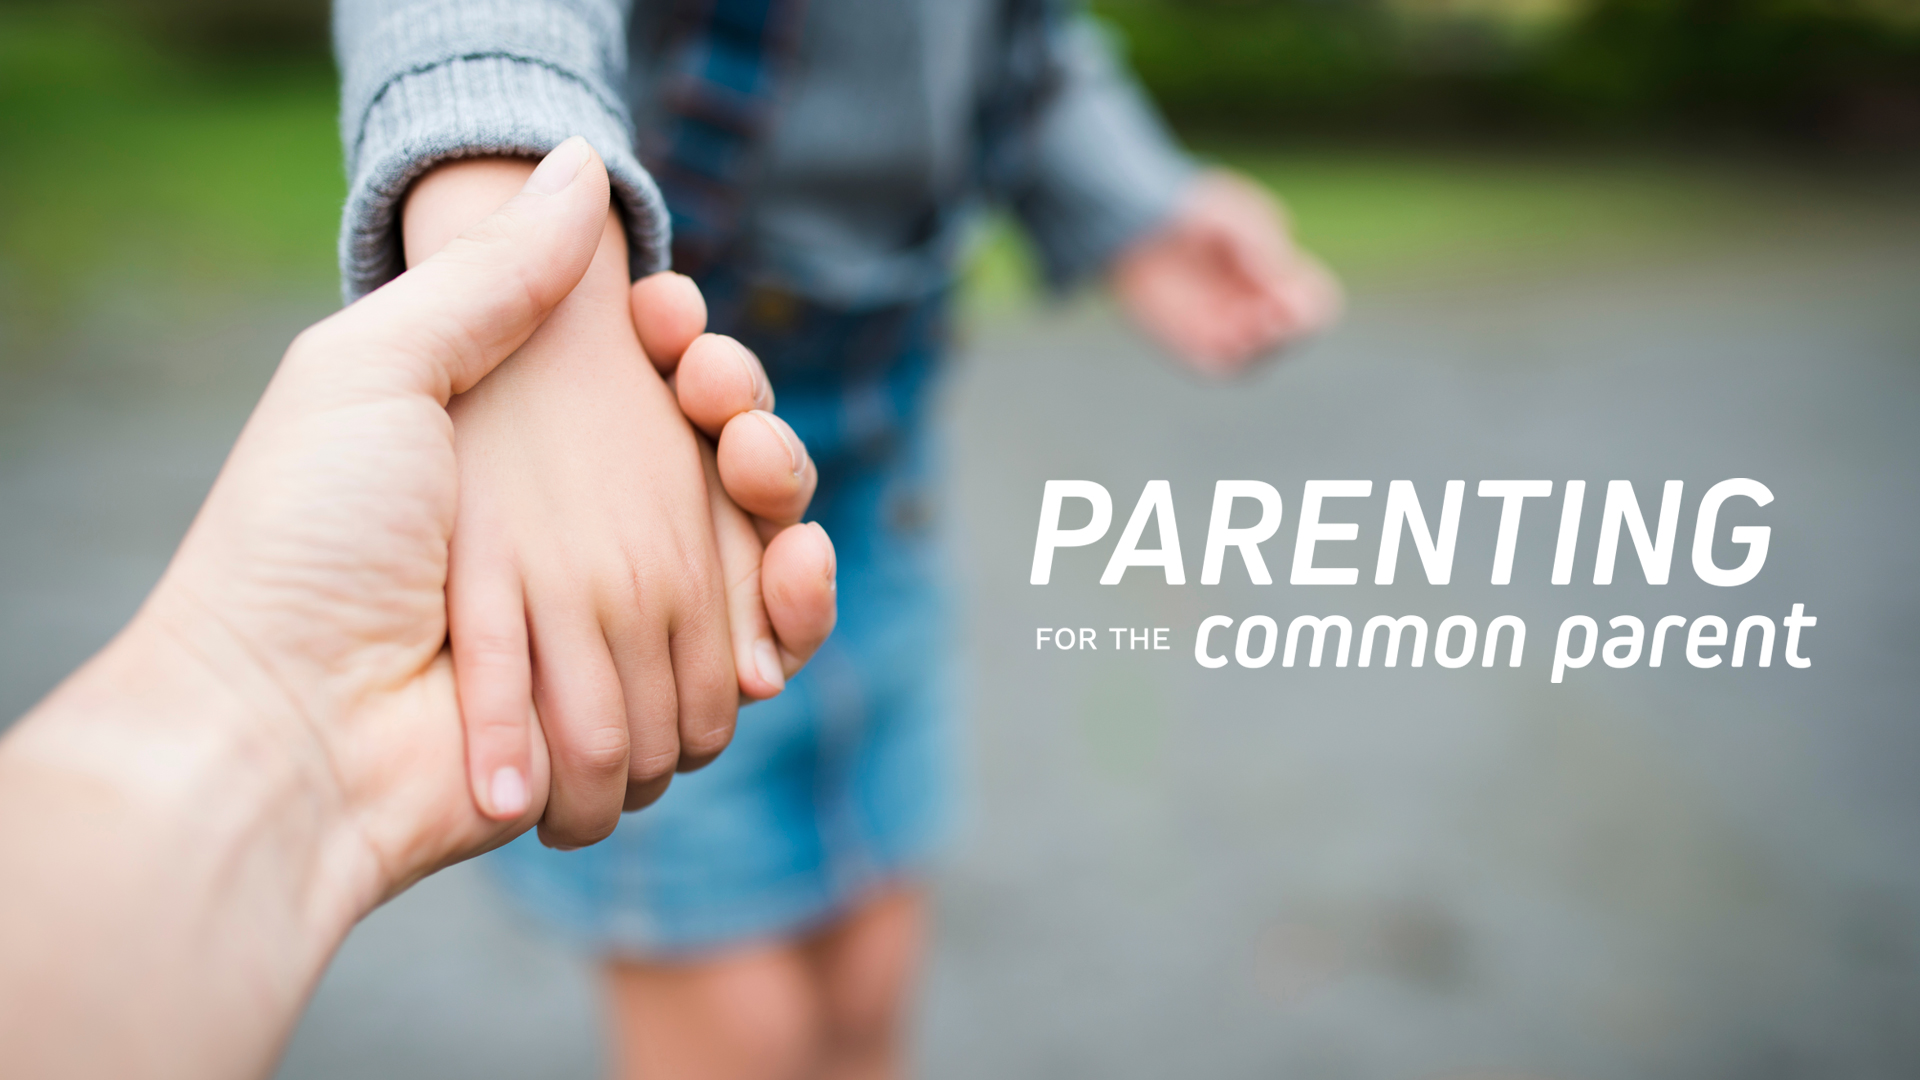 Parenting for the Common Parent